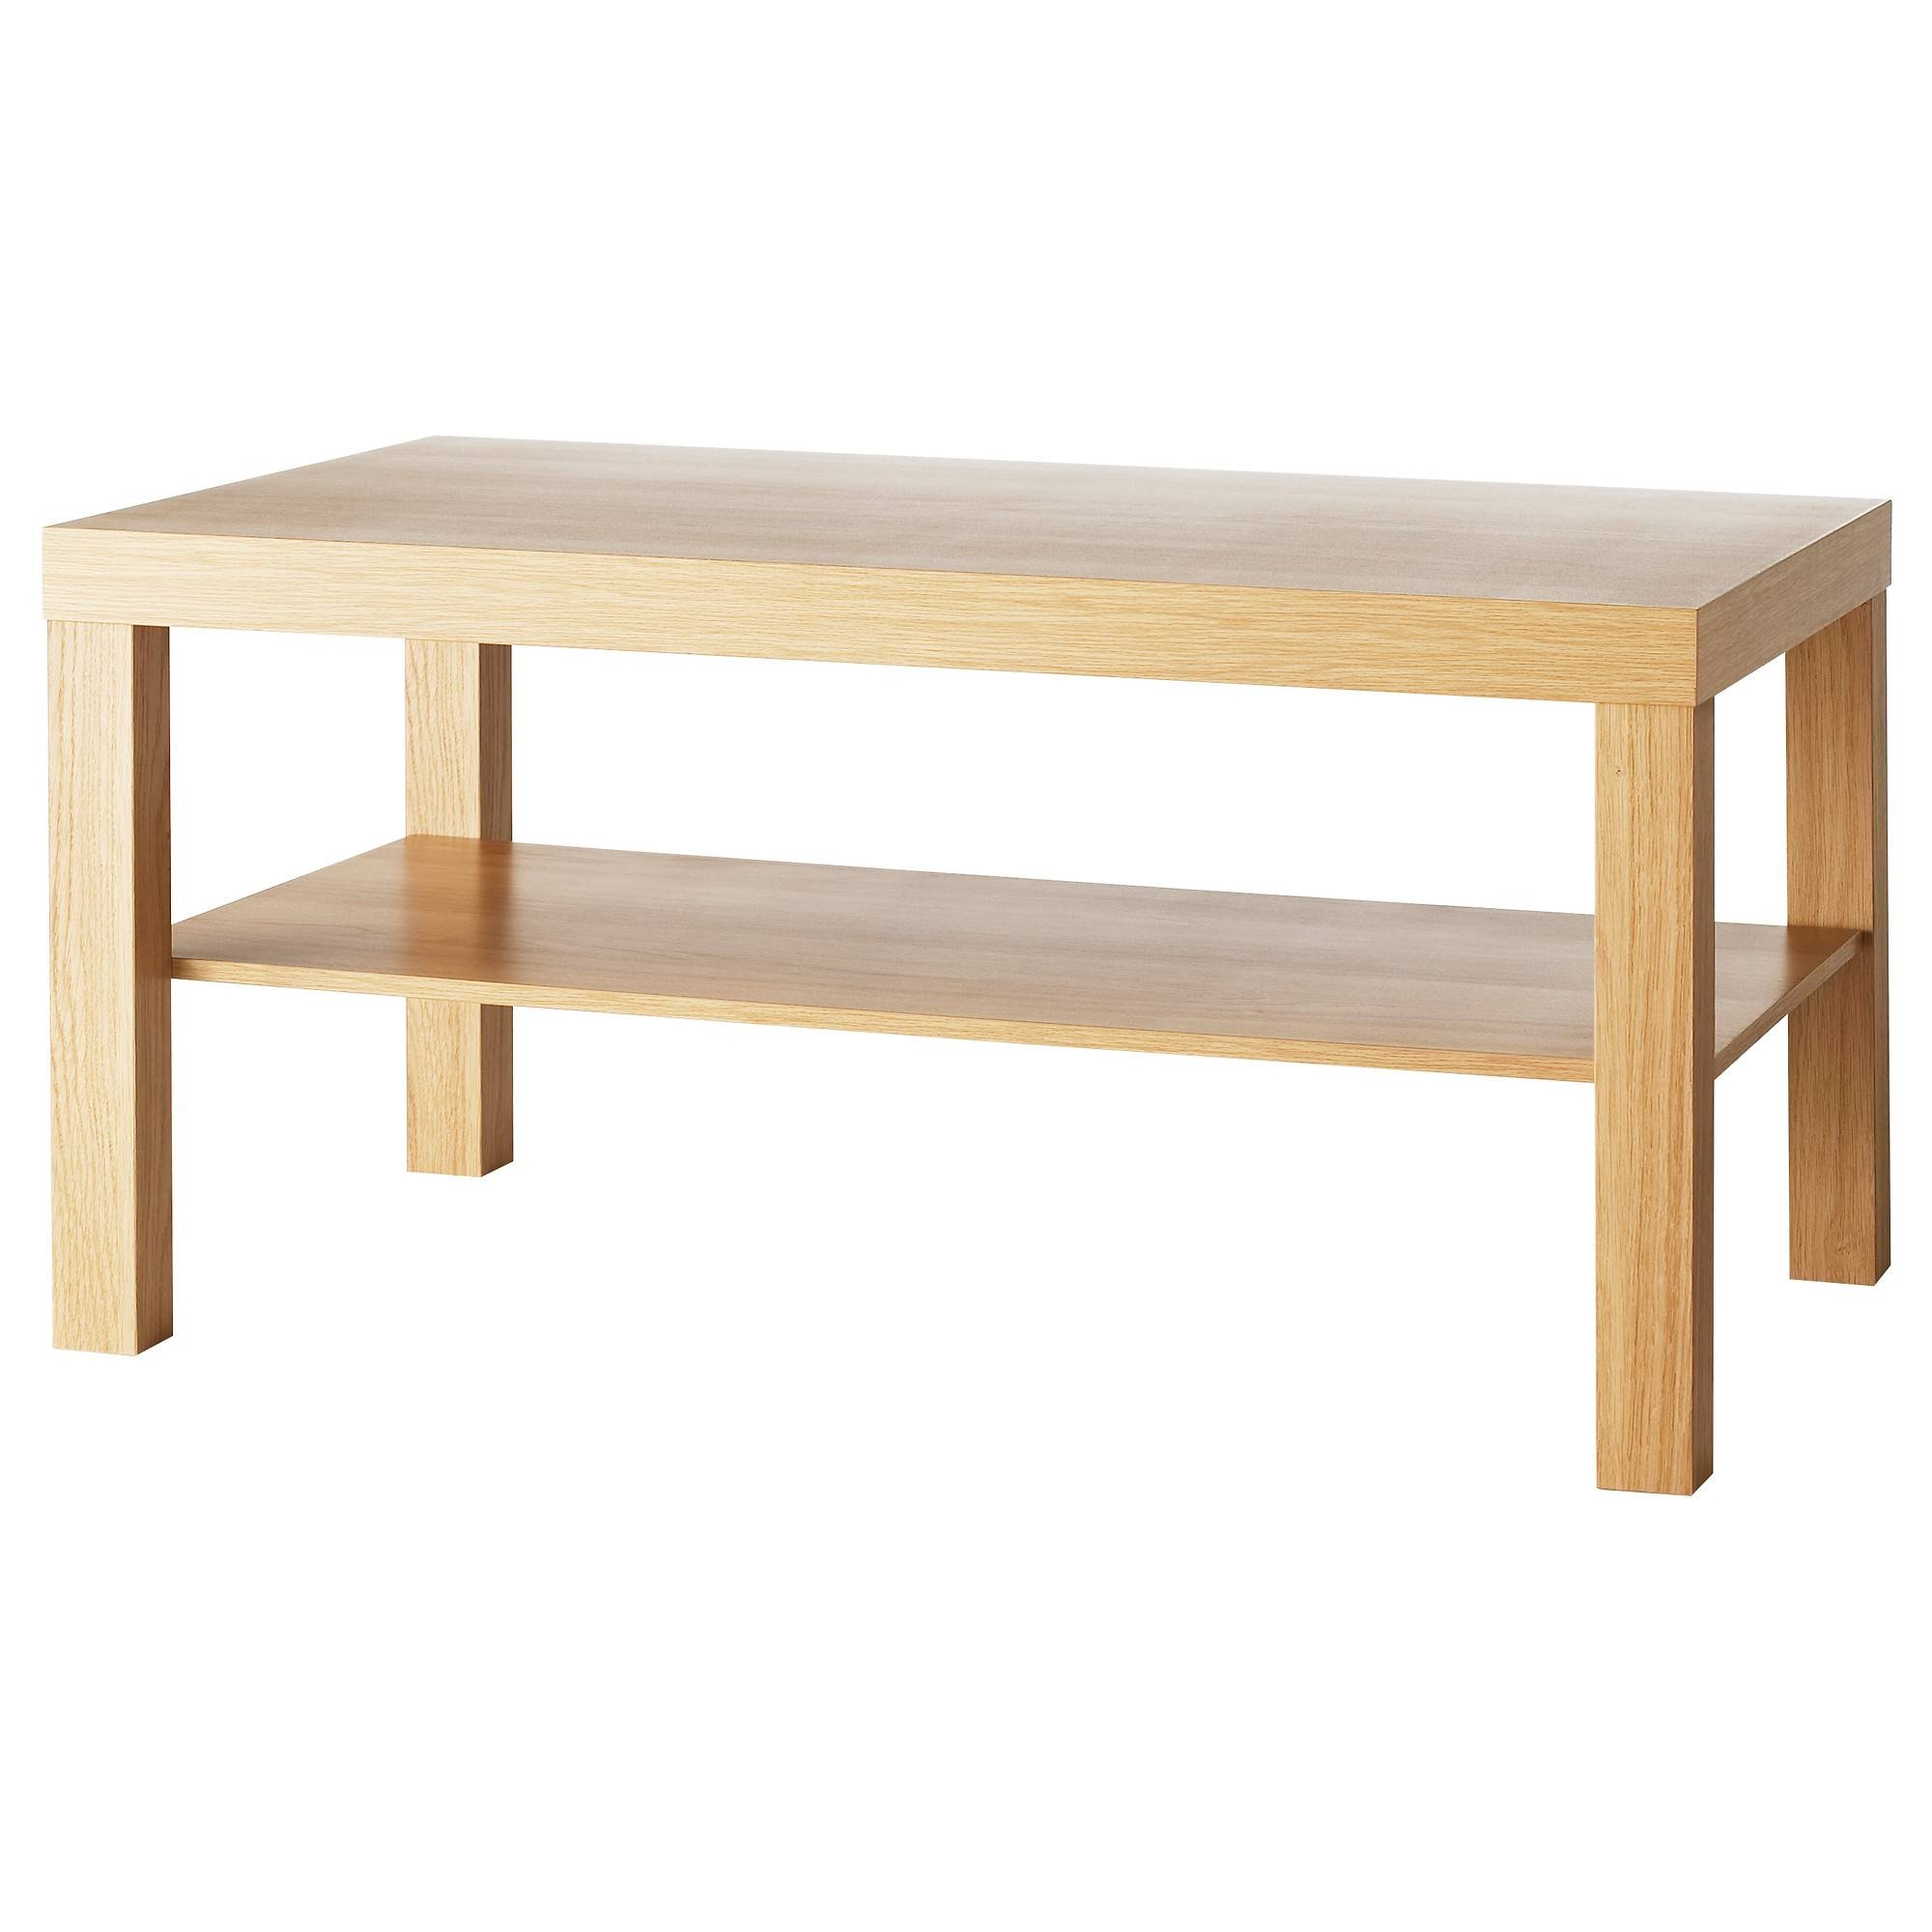 Lack Coffee Table Oak Effect 90X55 Cm - Ikea with High Coffee Tables (Image 13 of 15)